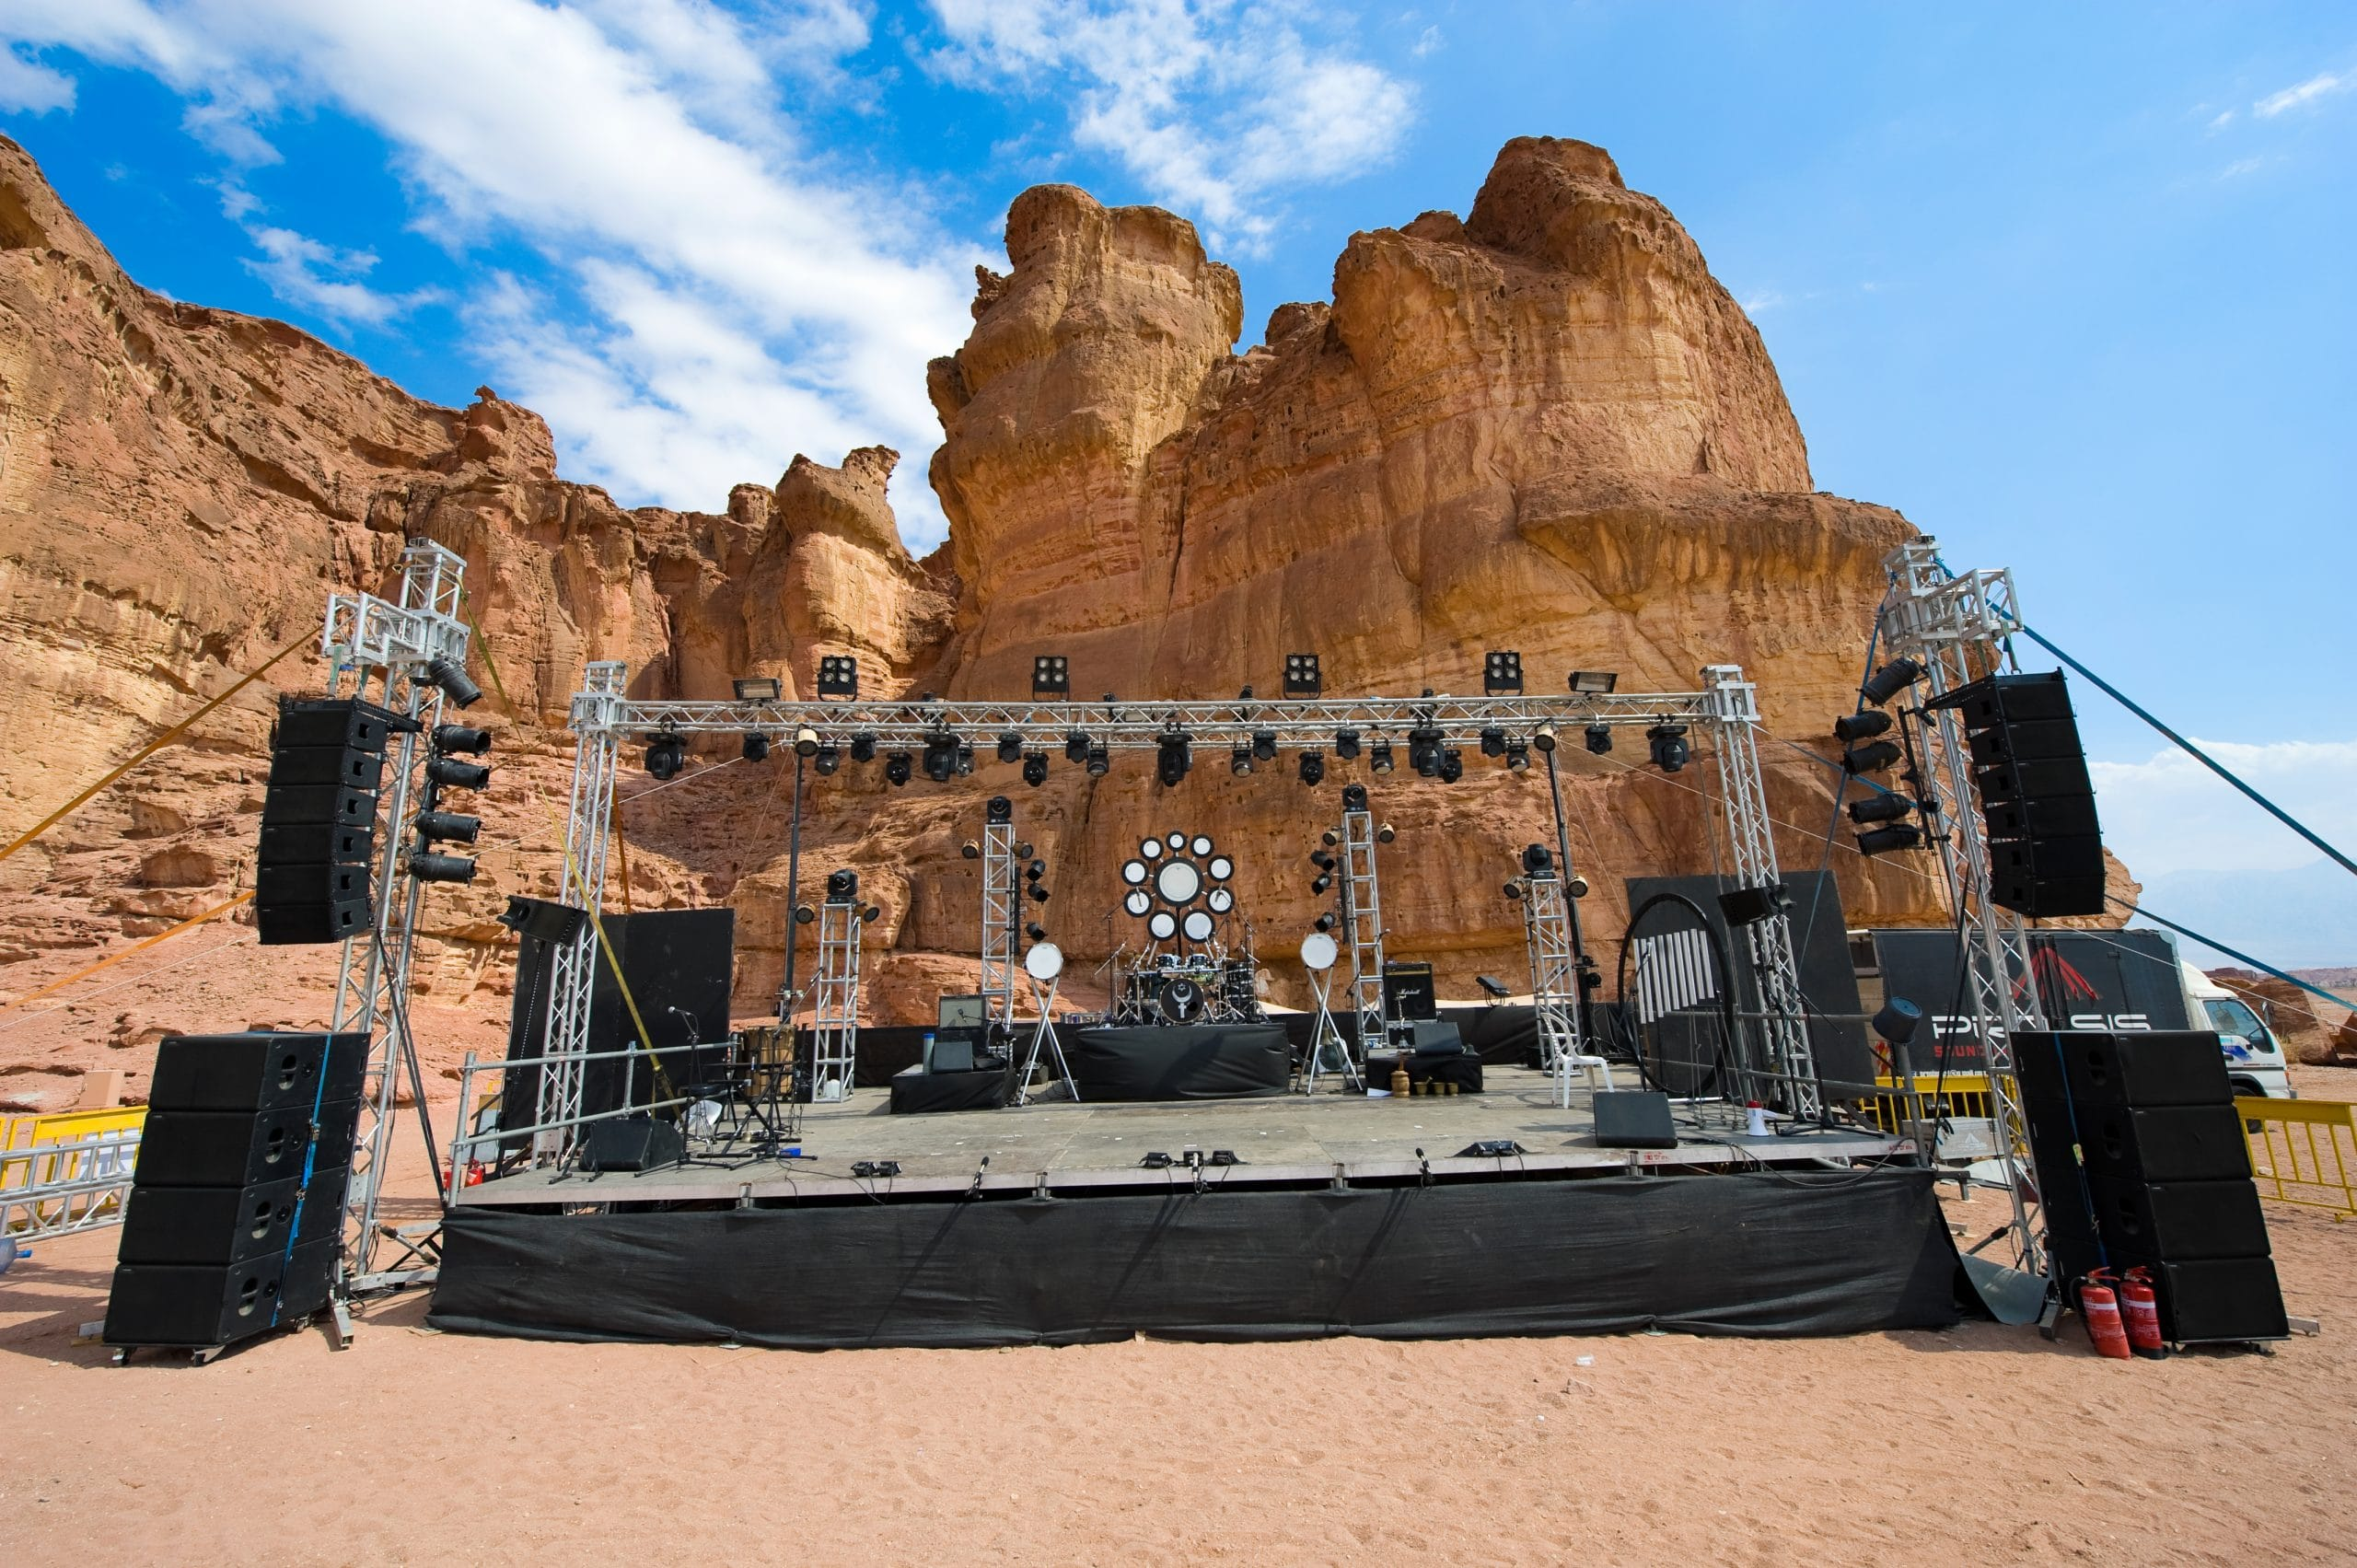 TIMNA PARK, ISRAEL - OCT 13, 2014: A stage built for a festival in Timna Park in the southern negev desert in Israel